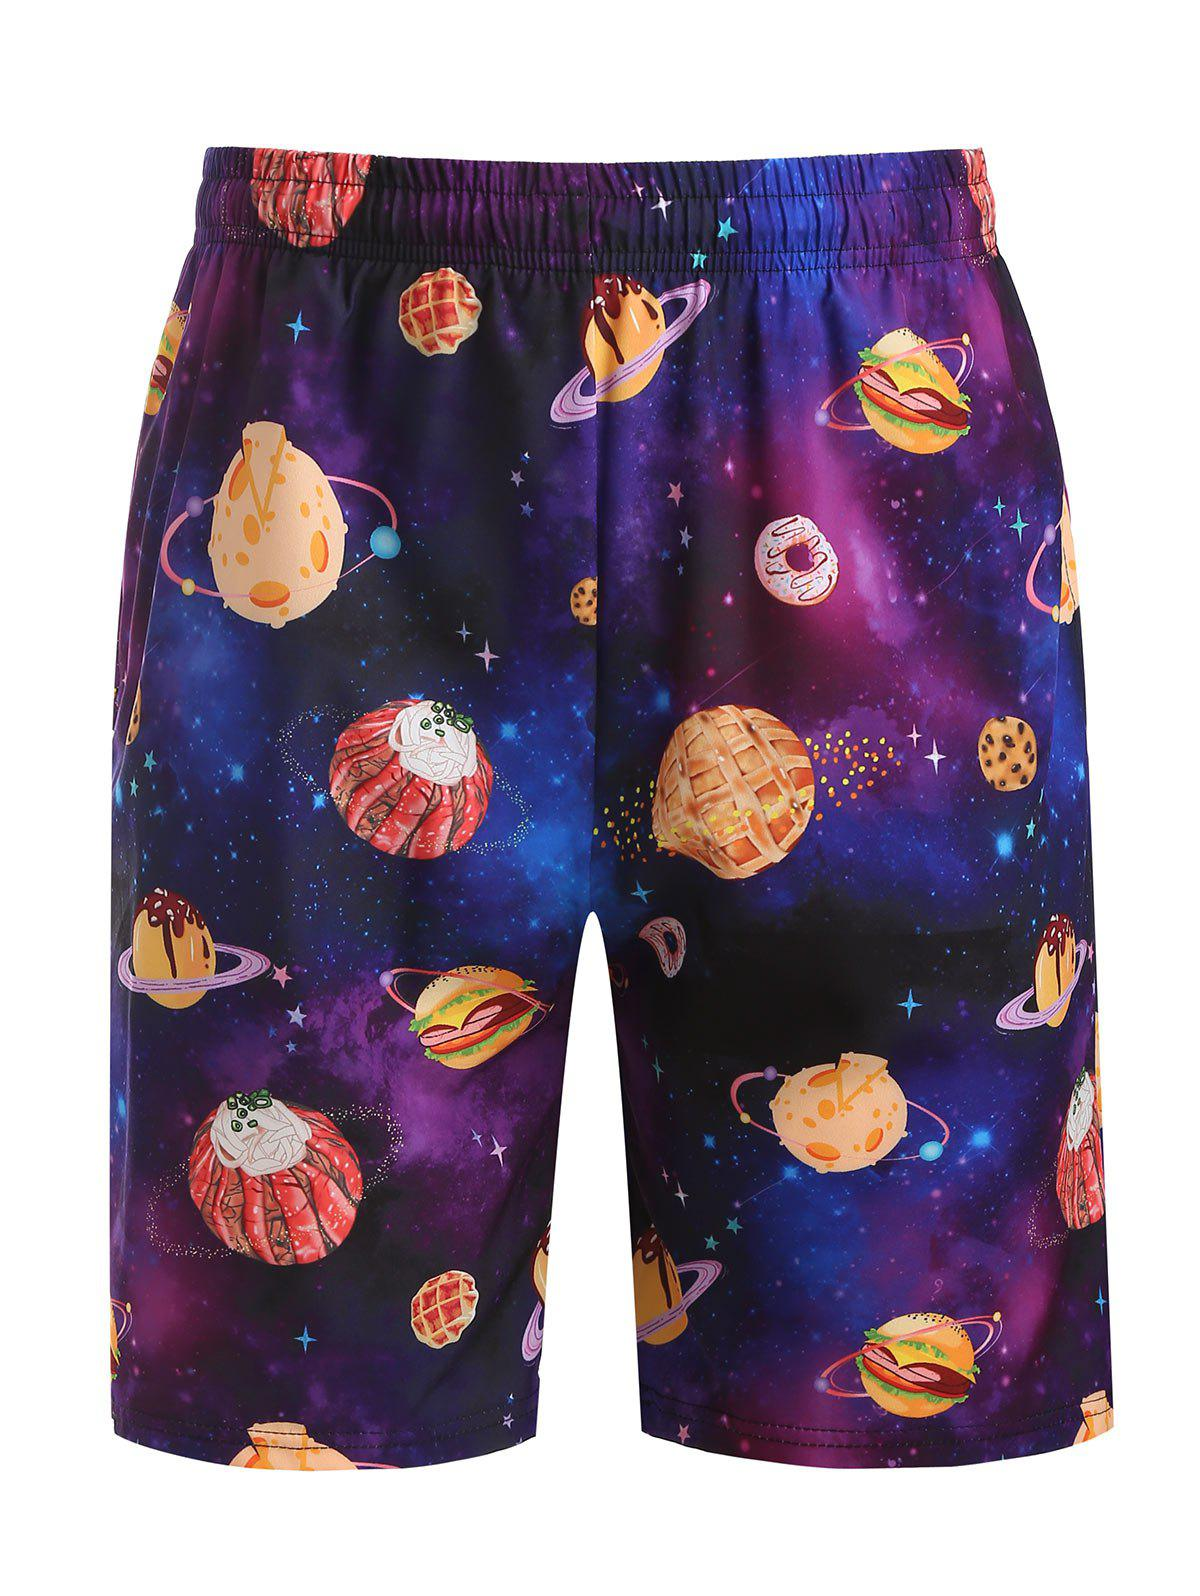 Galaxy Dessert Print Beach Shorts - PURPLE IRIS L